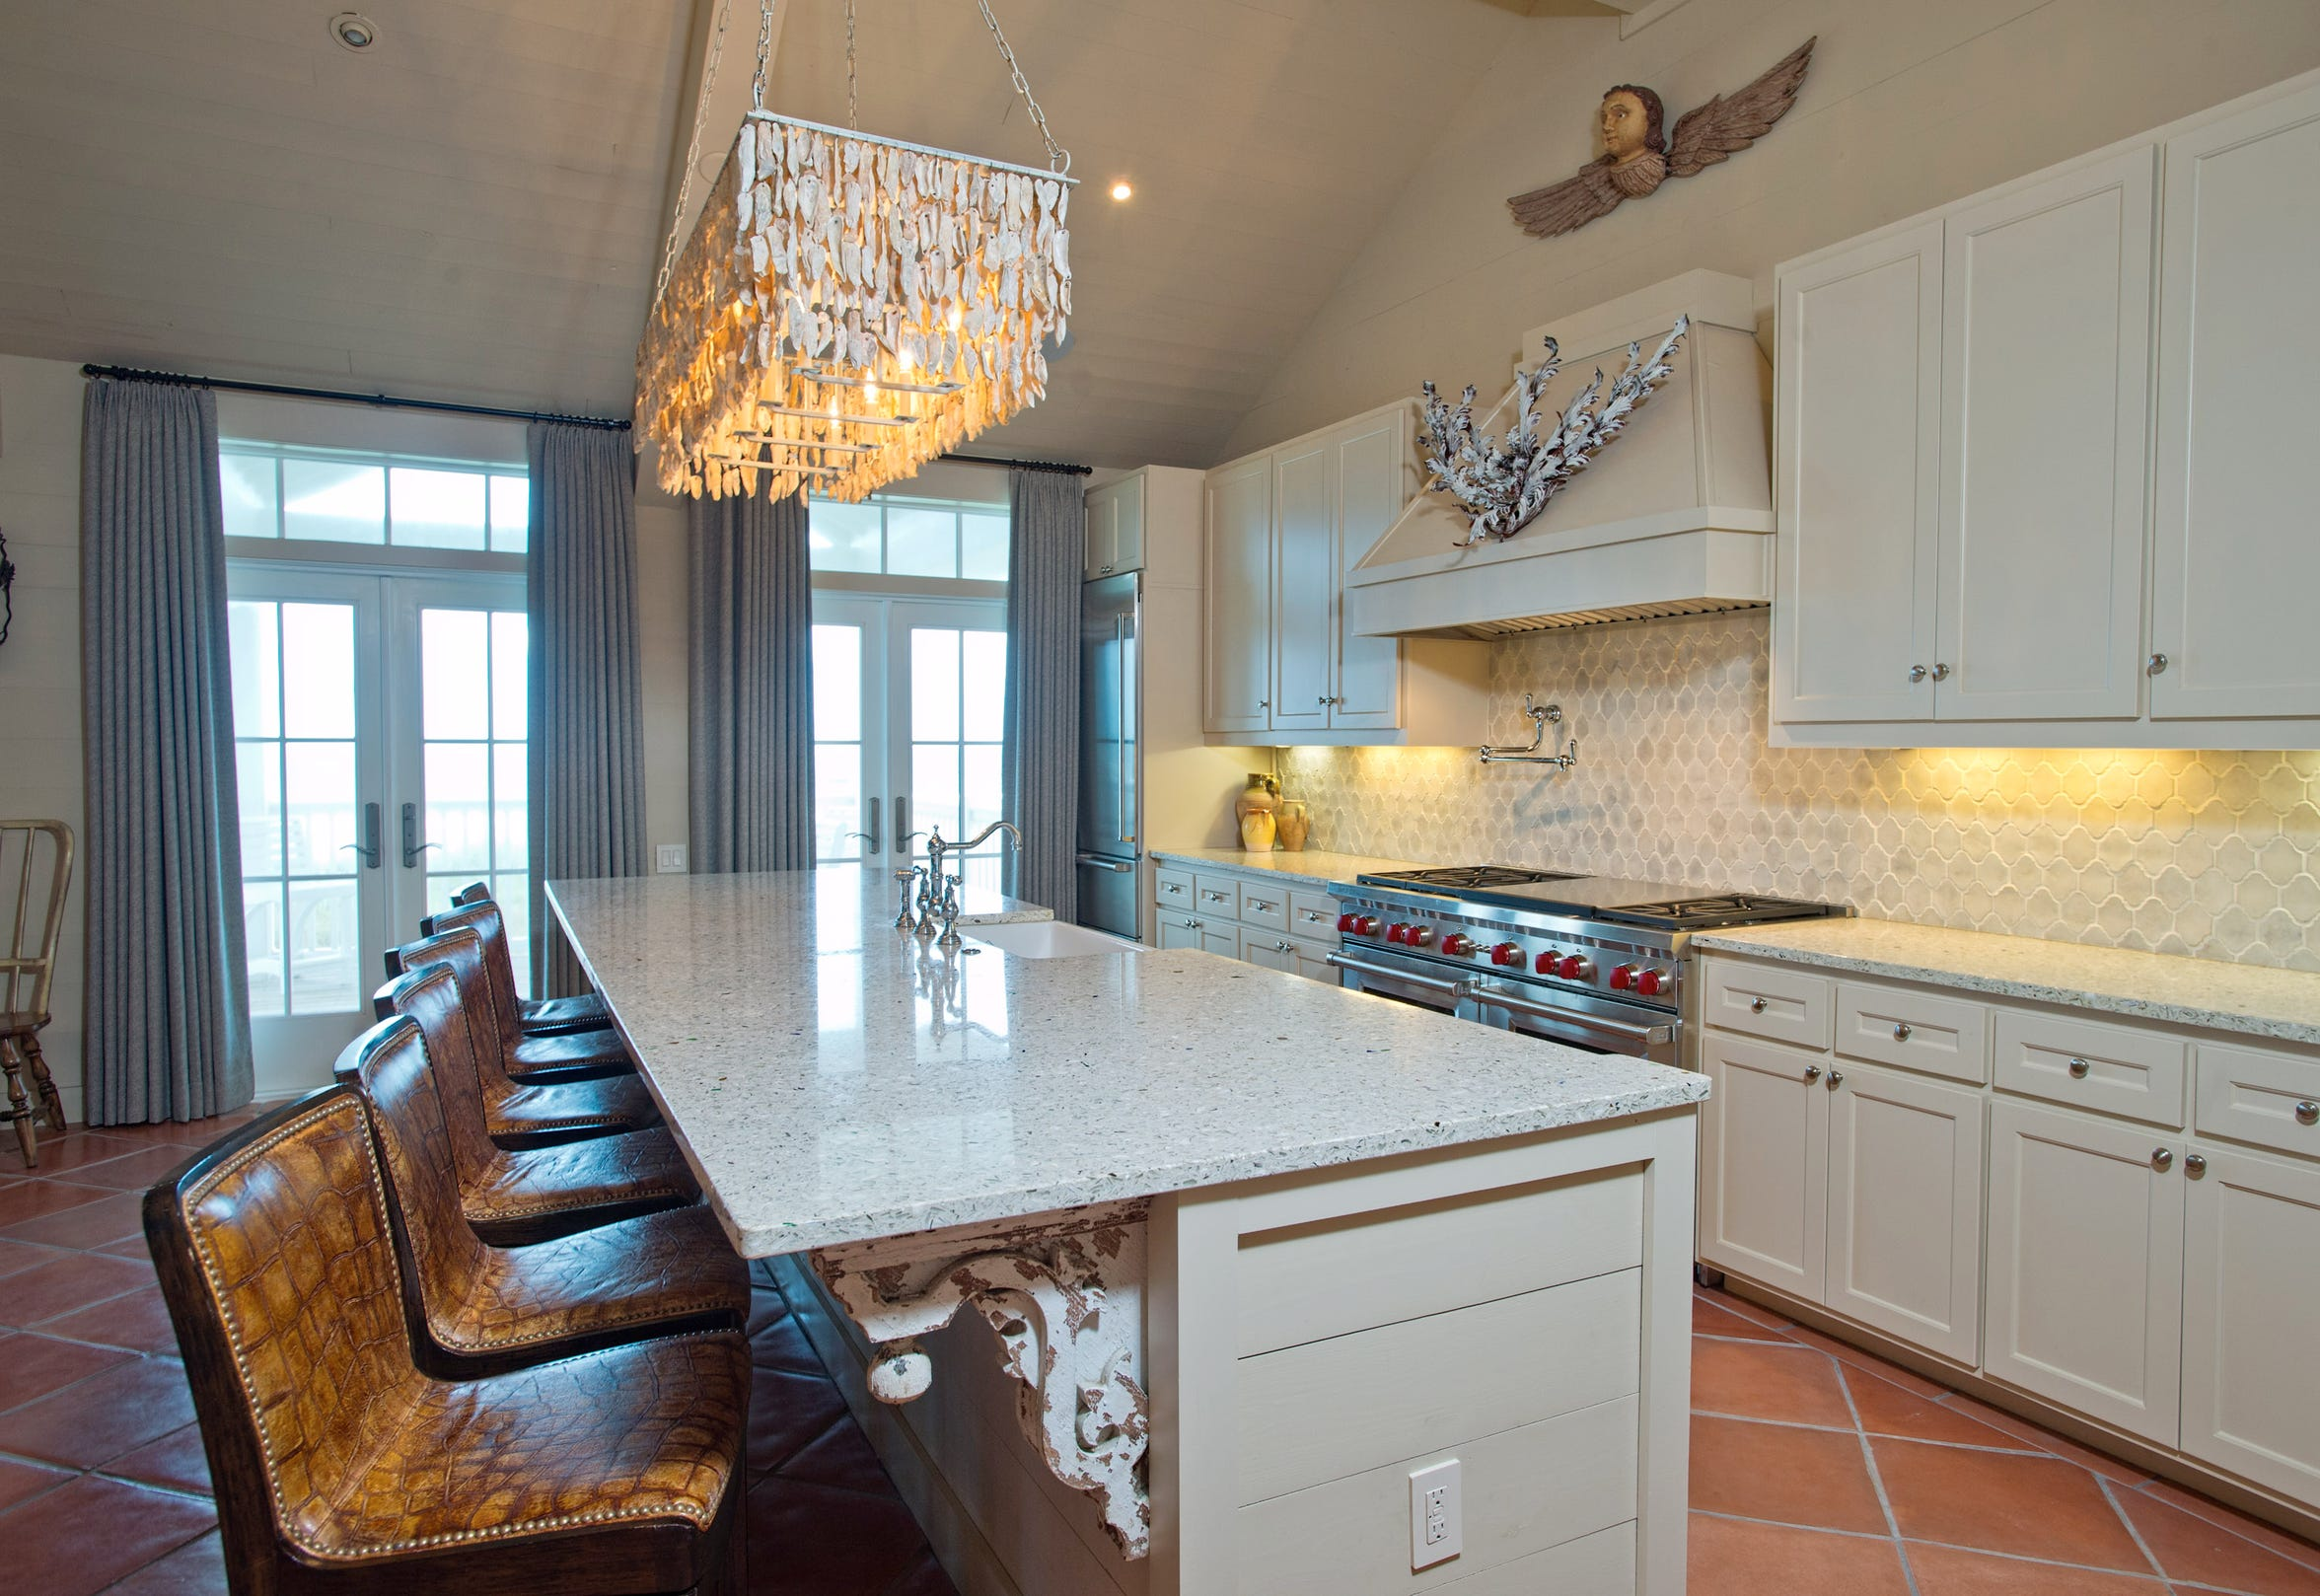 The open kitchen has an island bar with seating for six, two refrigerators and a commercial style Wolf gas range.